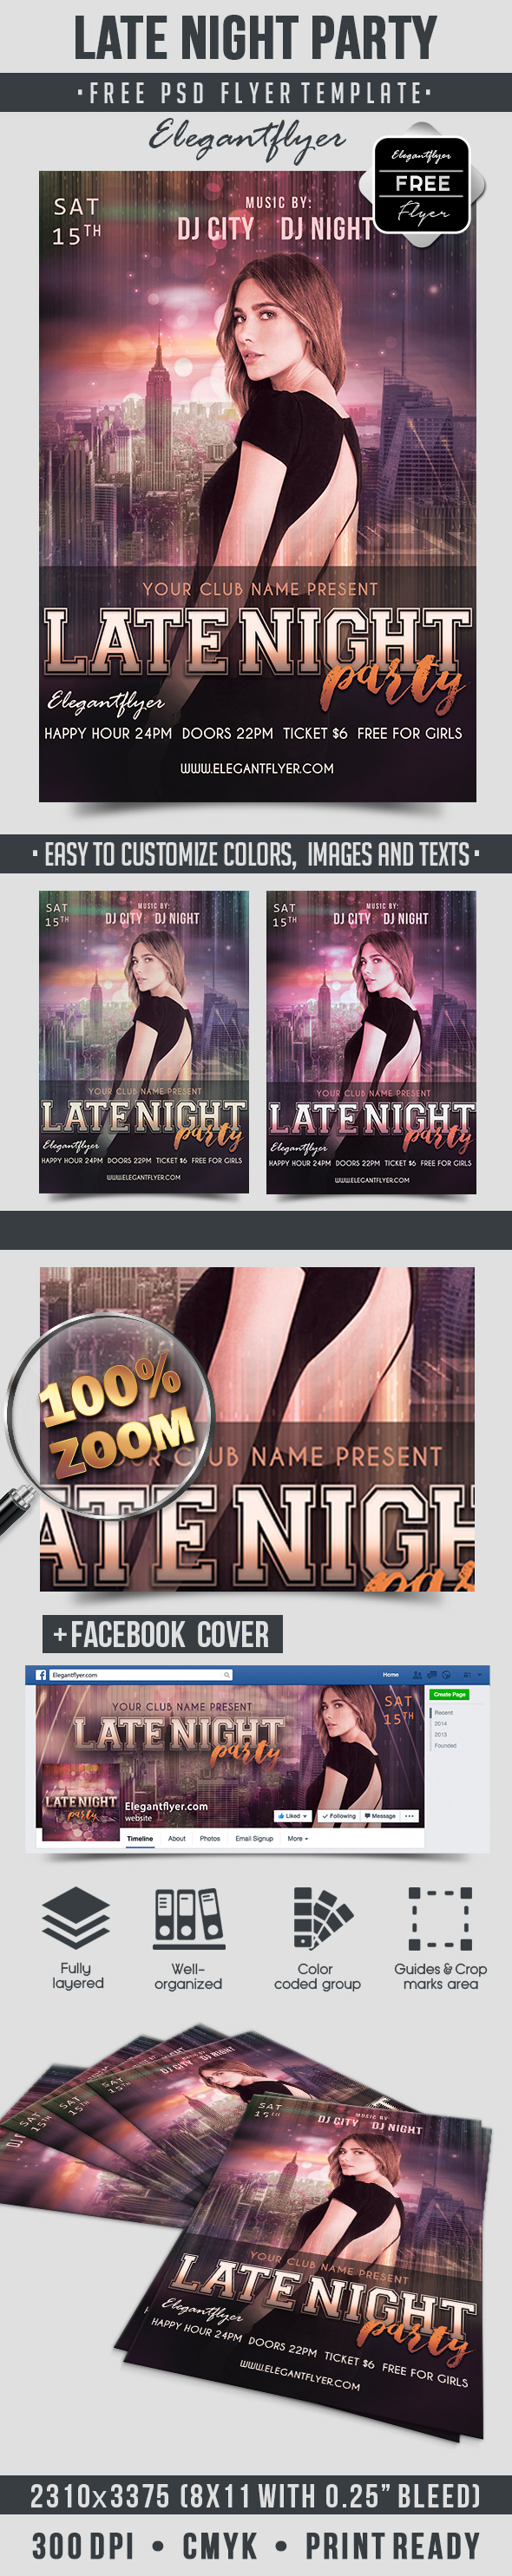 Late Night Party – Free Flyer PSD Template + Facebook Cover